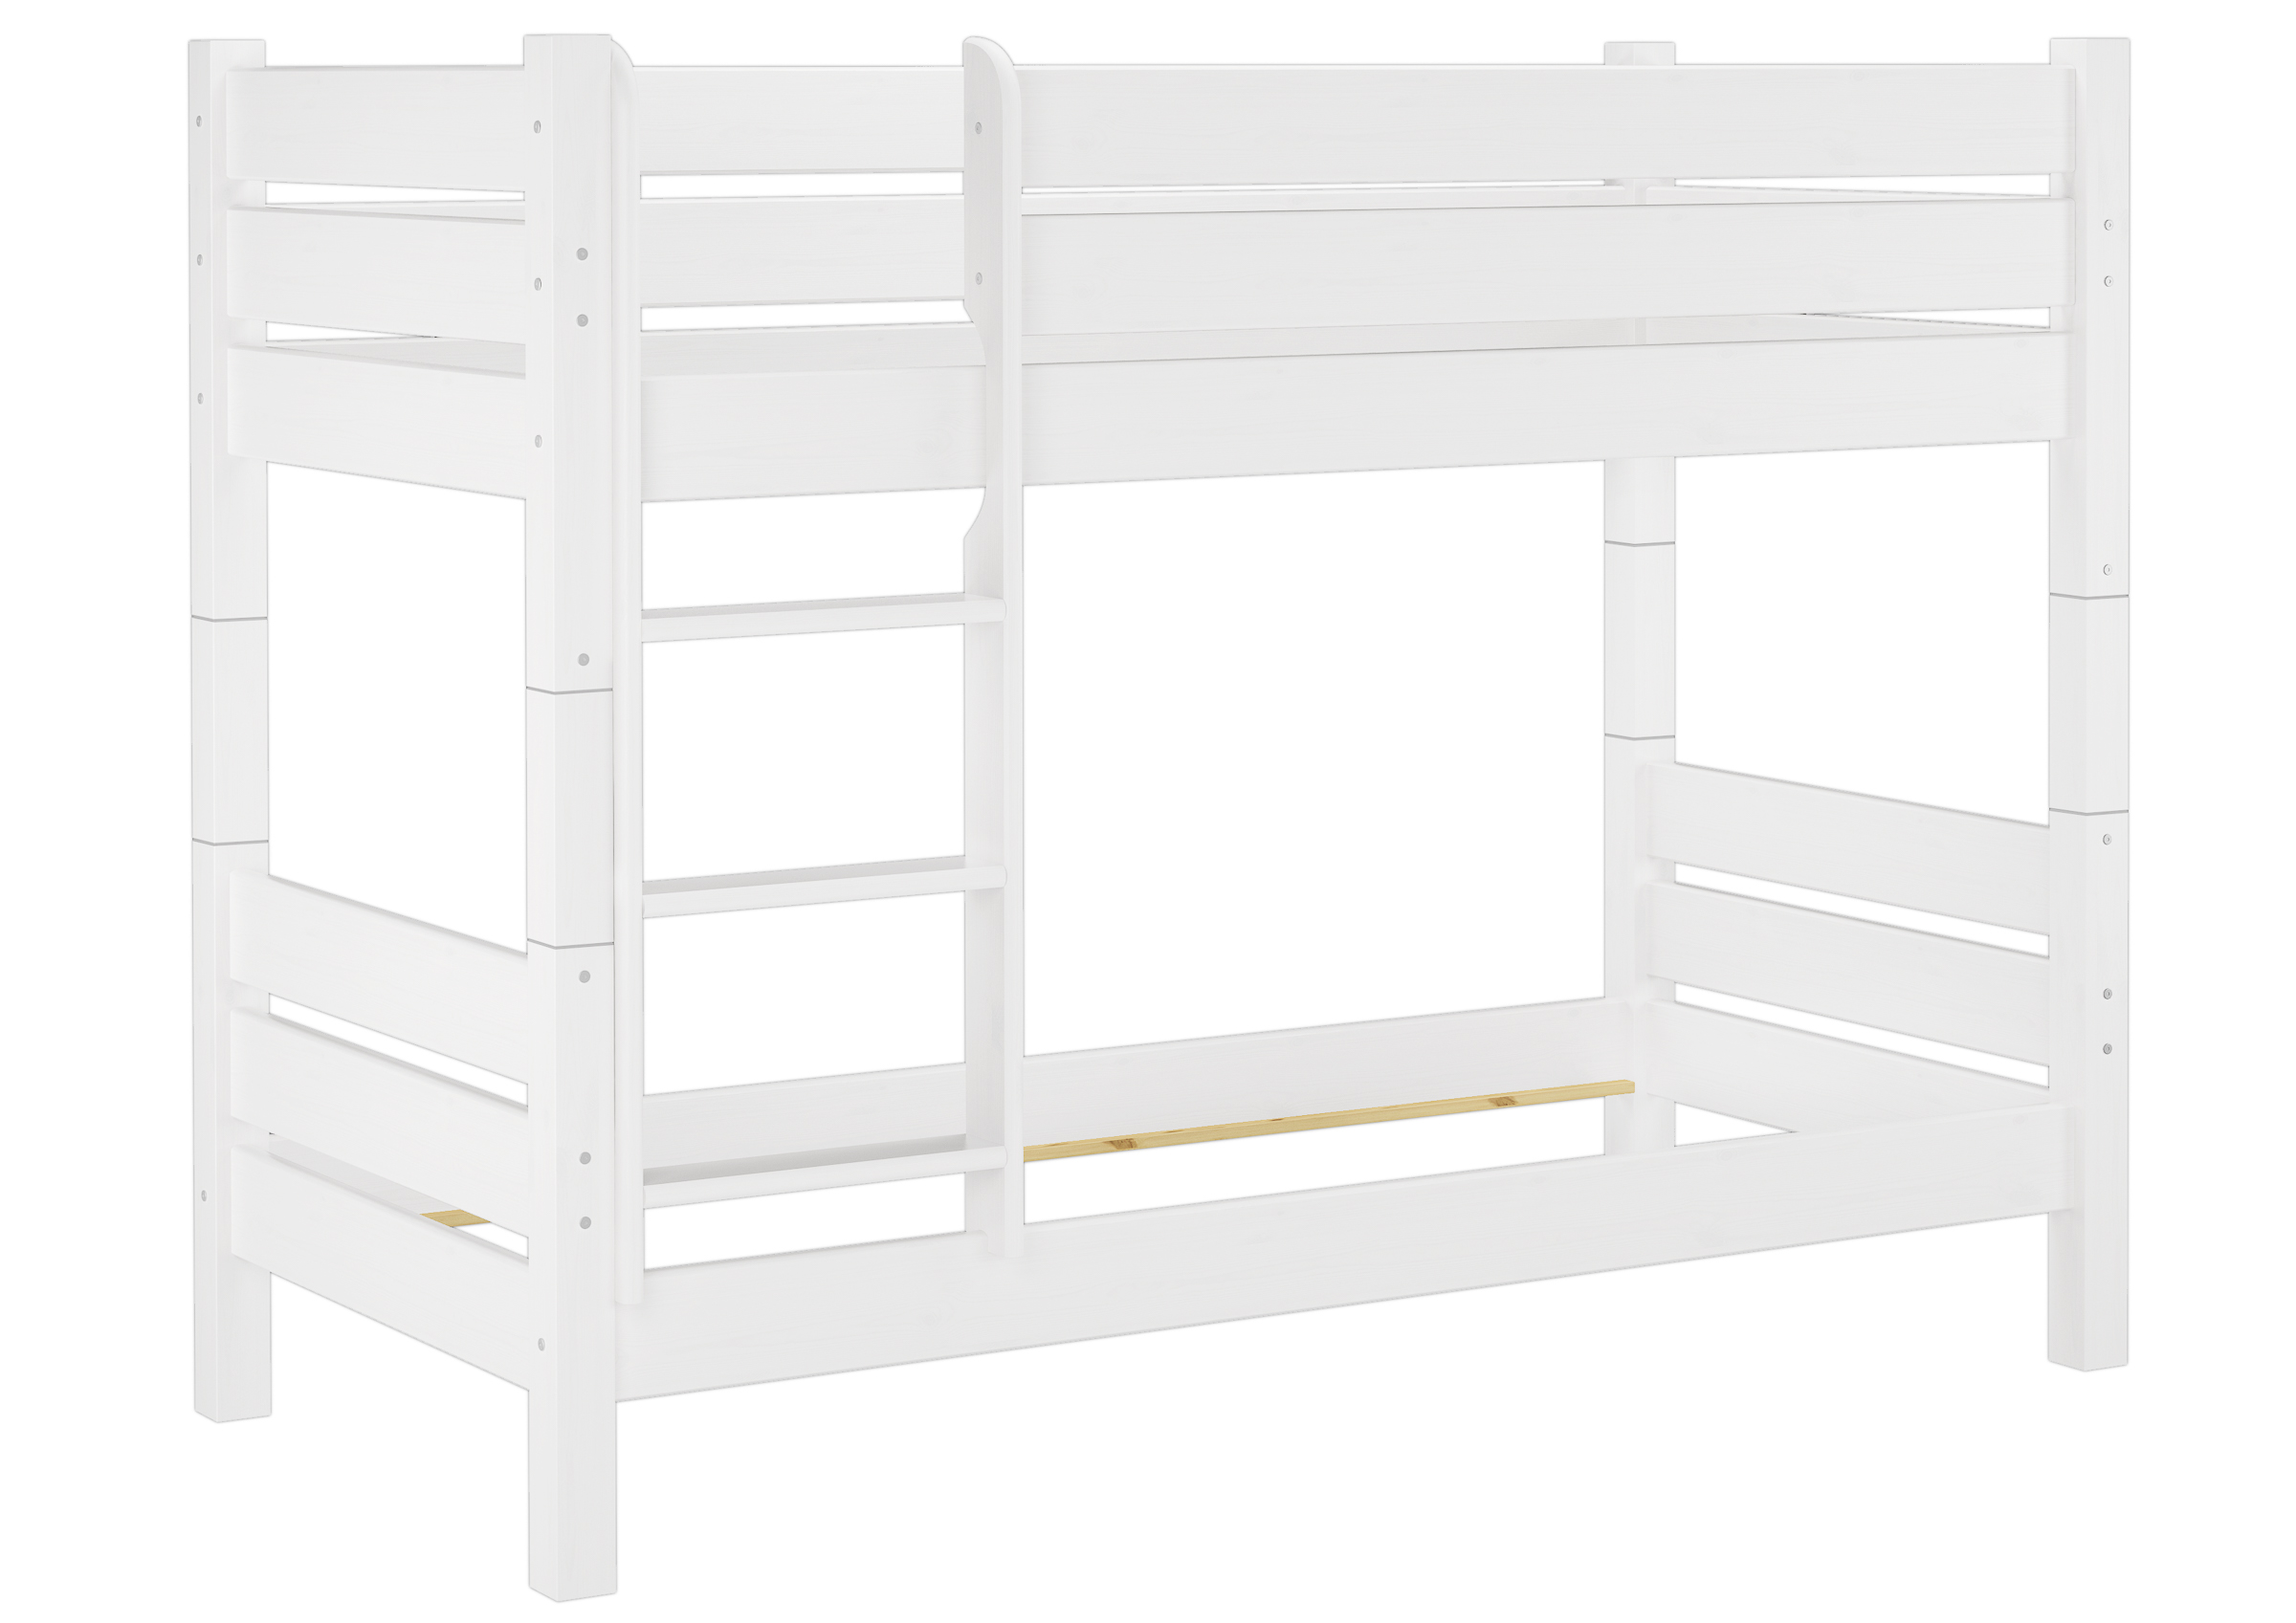 Solid Long White Bunkbed Of Eco Pine 80x220 For Adults With Slats Separable 60 16 08 220wt100 Ceres Webshop